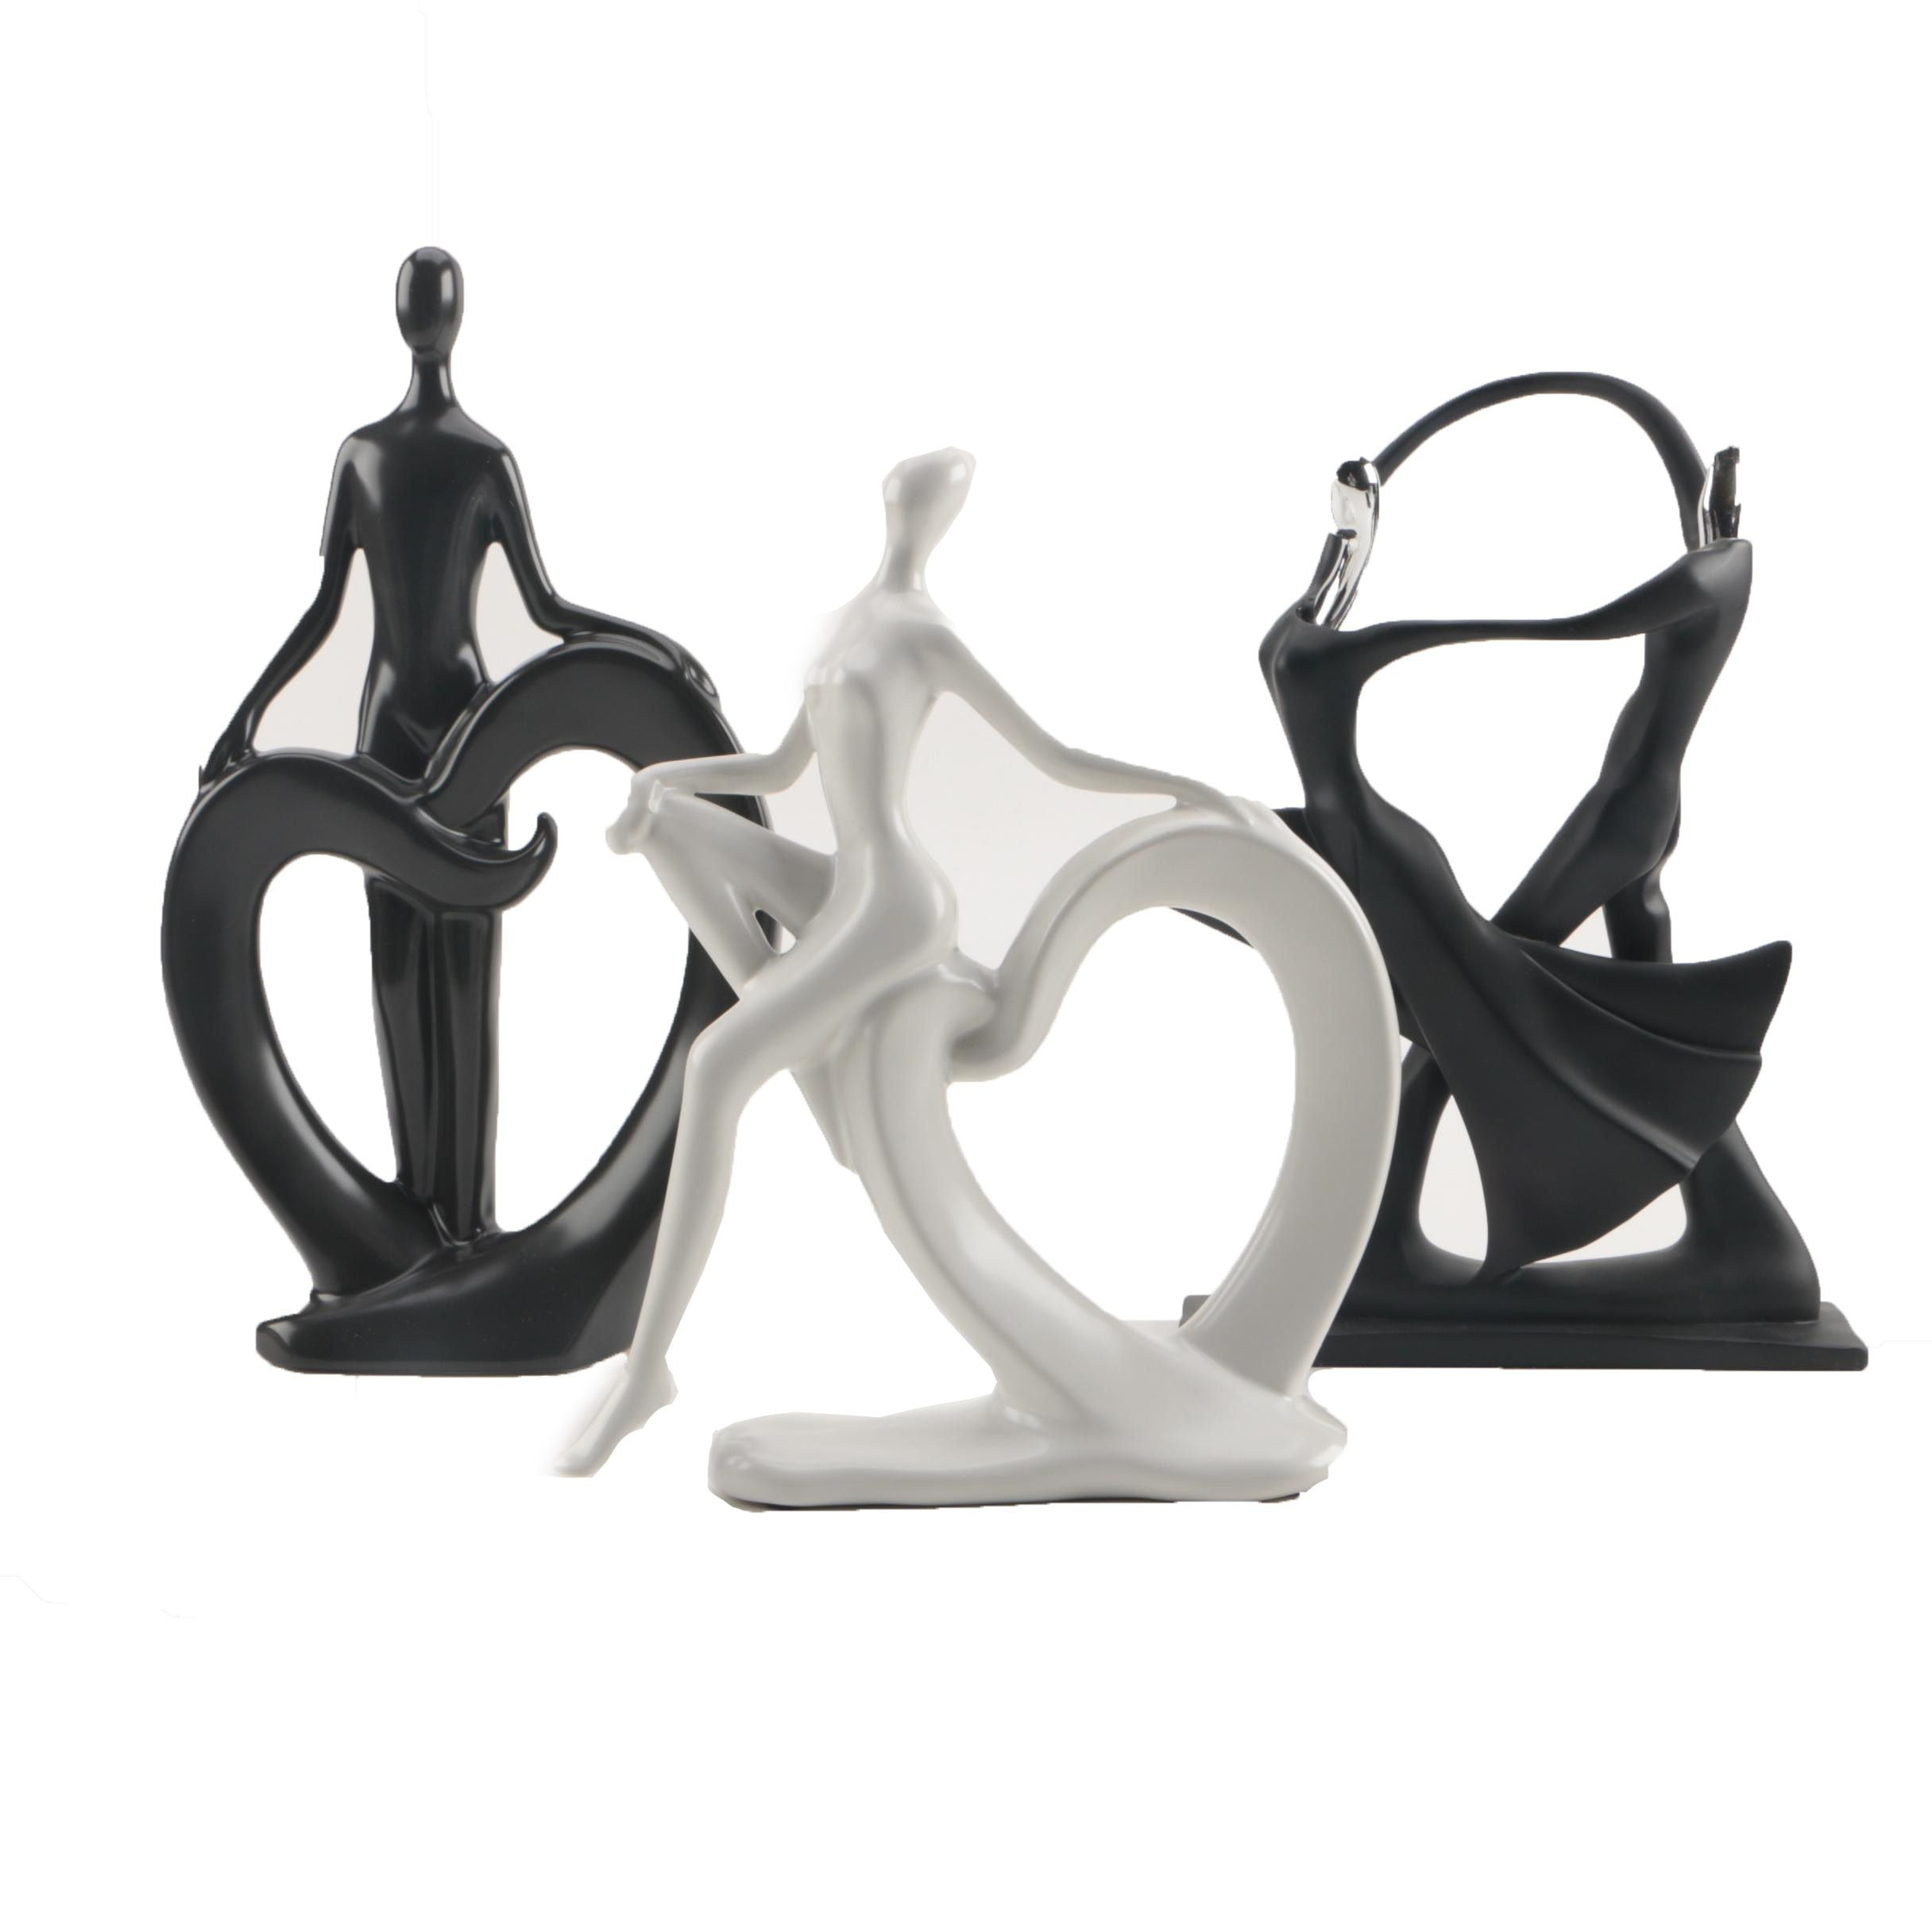 Art Deco Style Ceramic and Metal Dancer Figurines